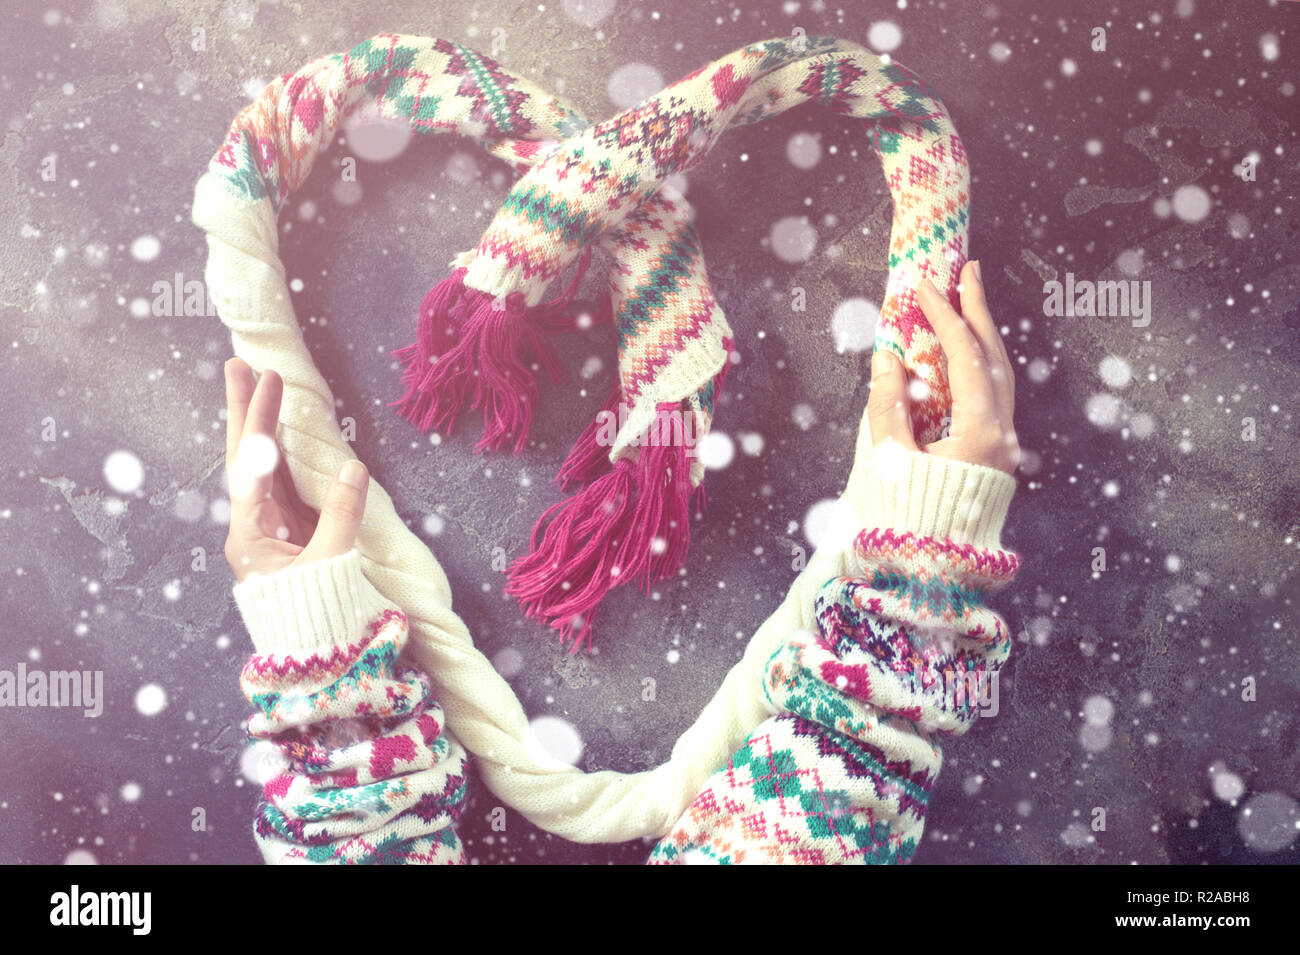 Heart made of a winter Christmas scarf - Stock Image